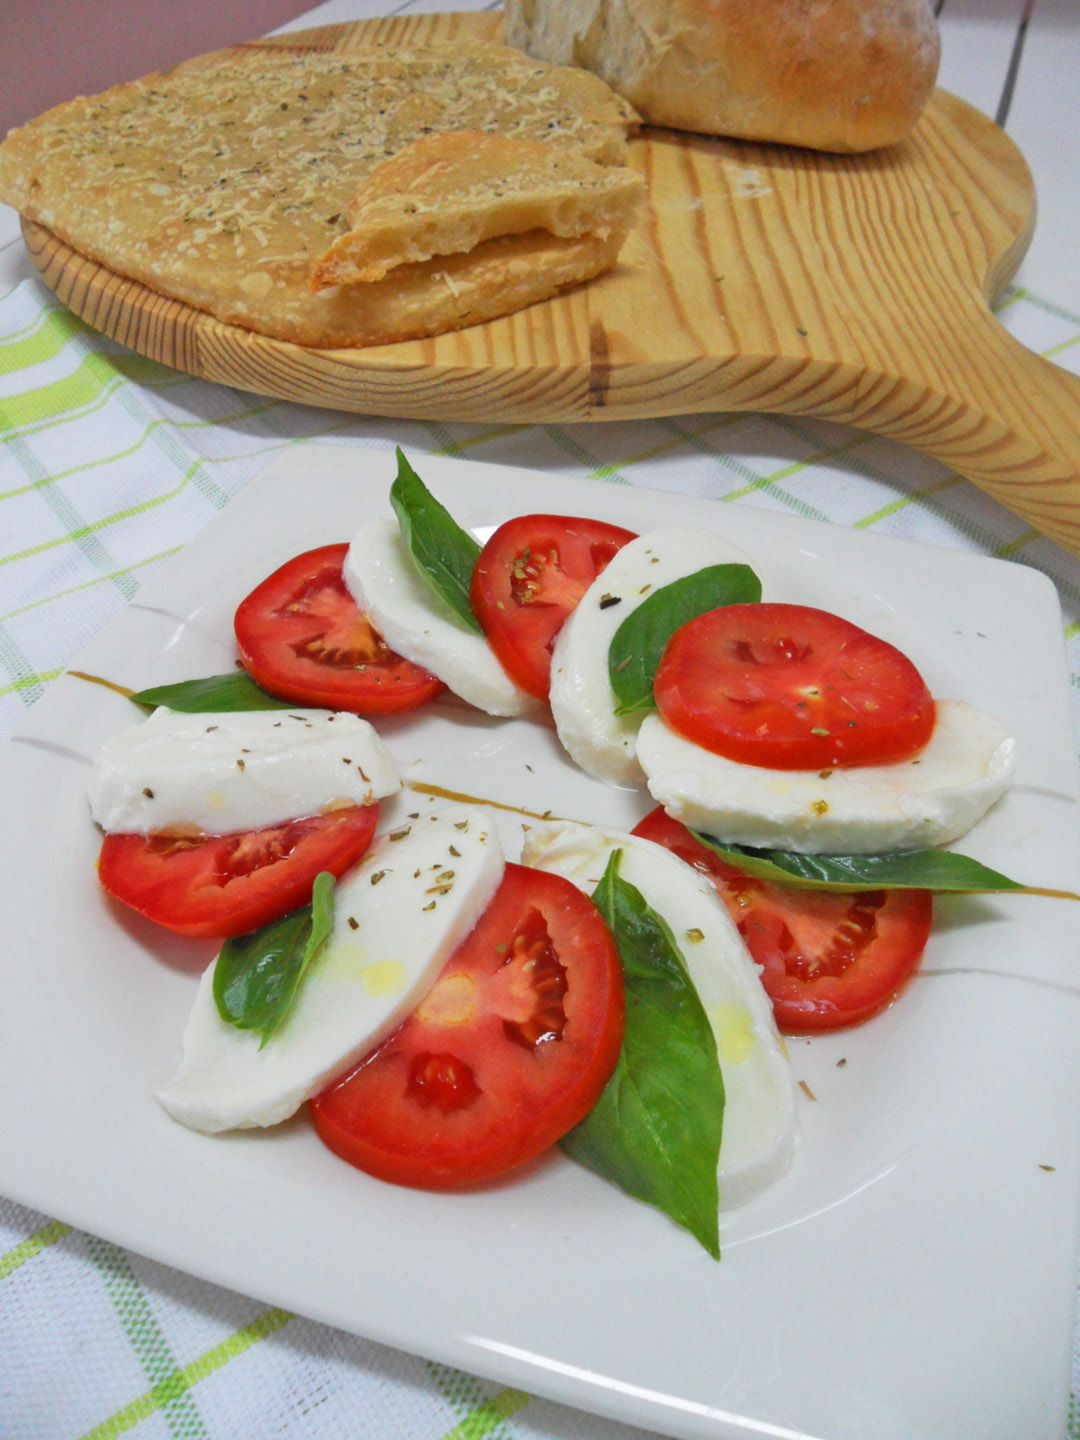 Caprese salad..... fresh mozzarella, tomato, basil, olive oil, salt, gorund black pepper, oregano